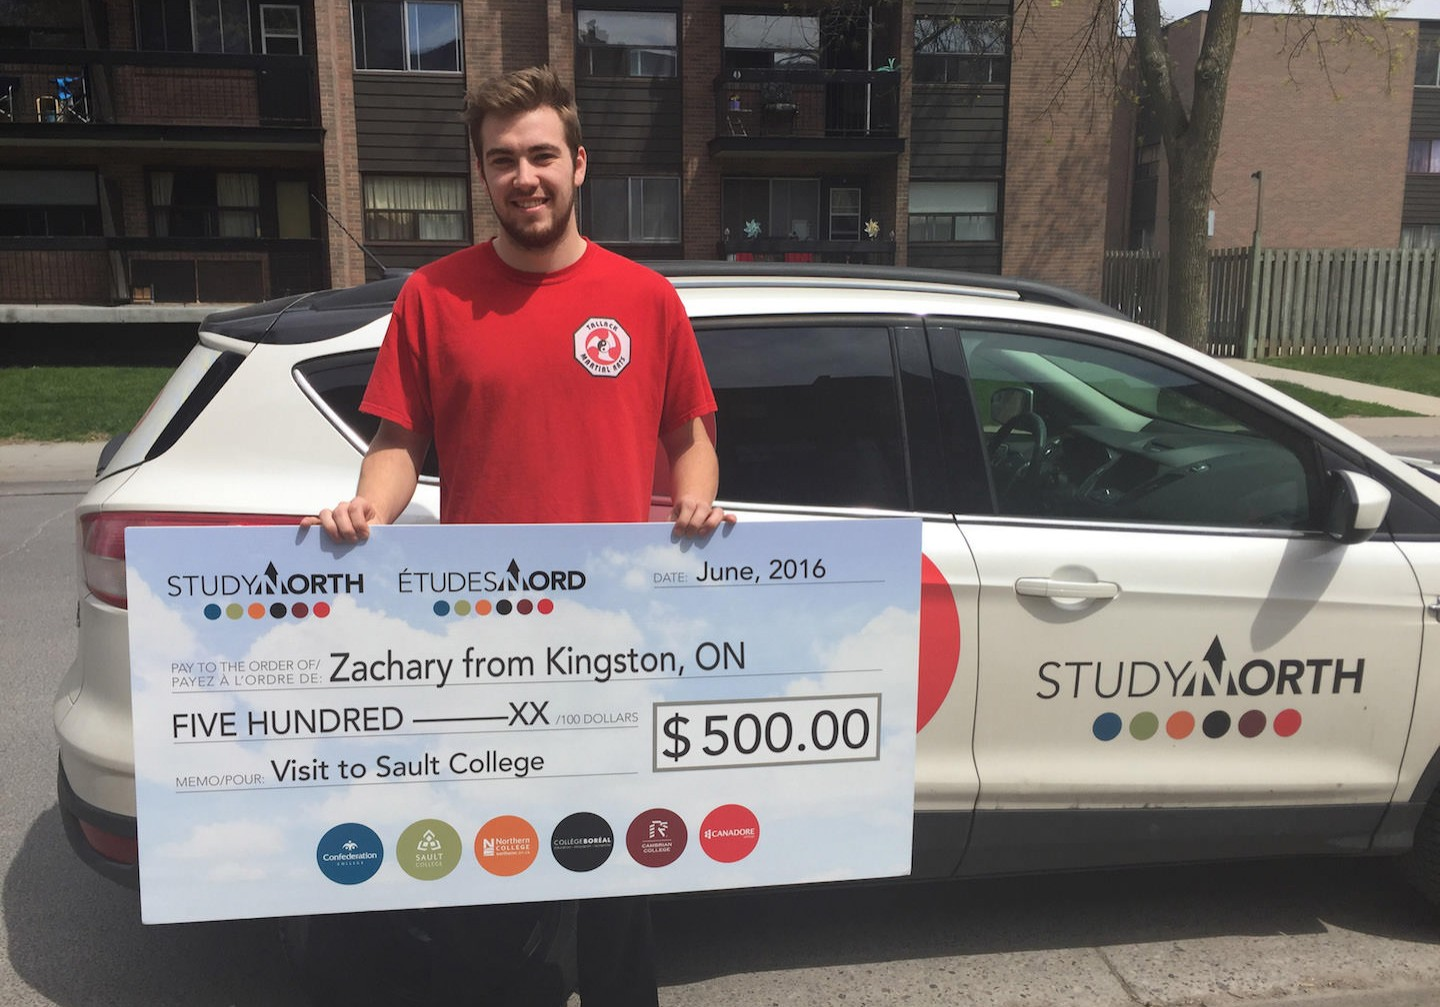 Zachary Kingston Sault College_cheque